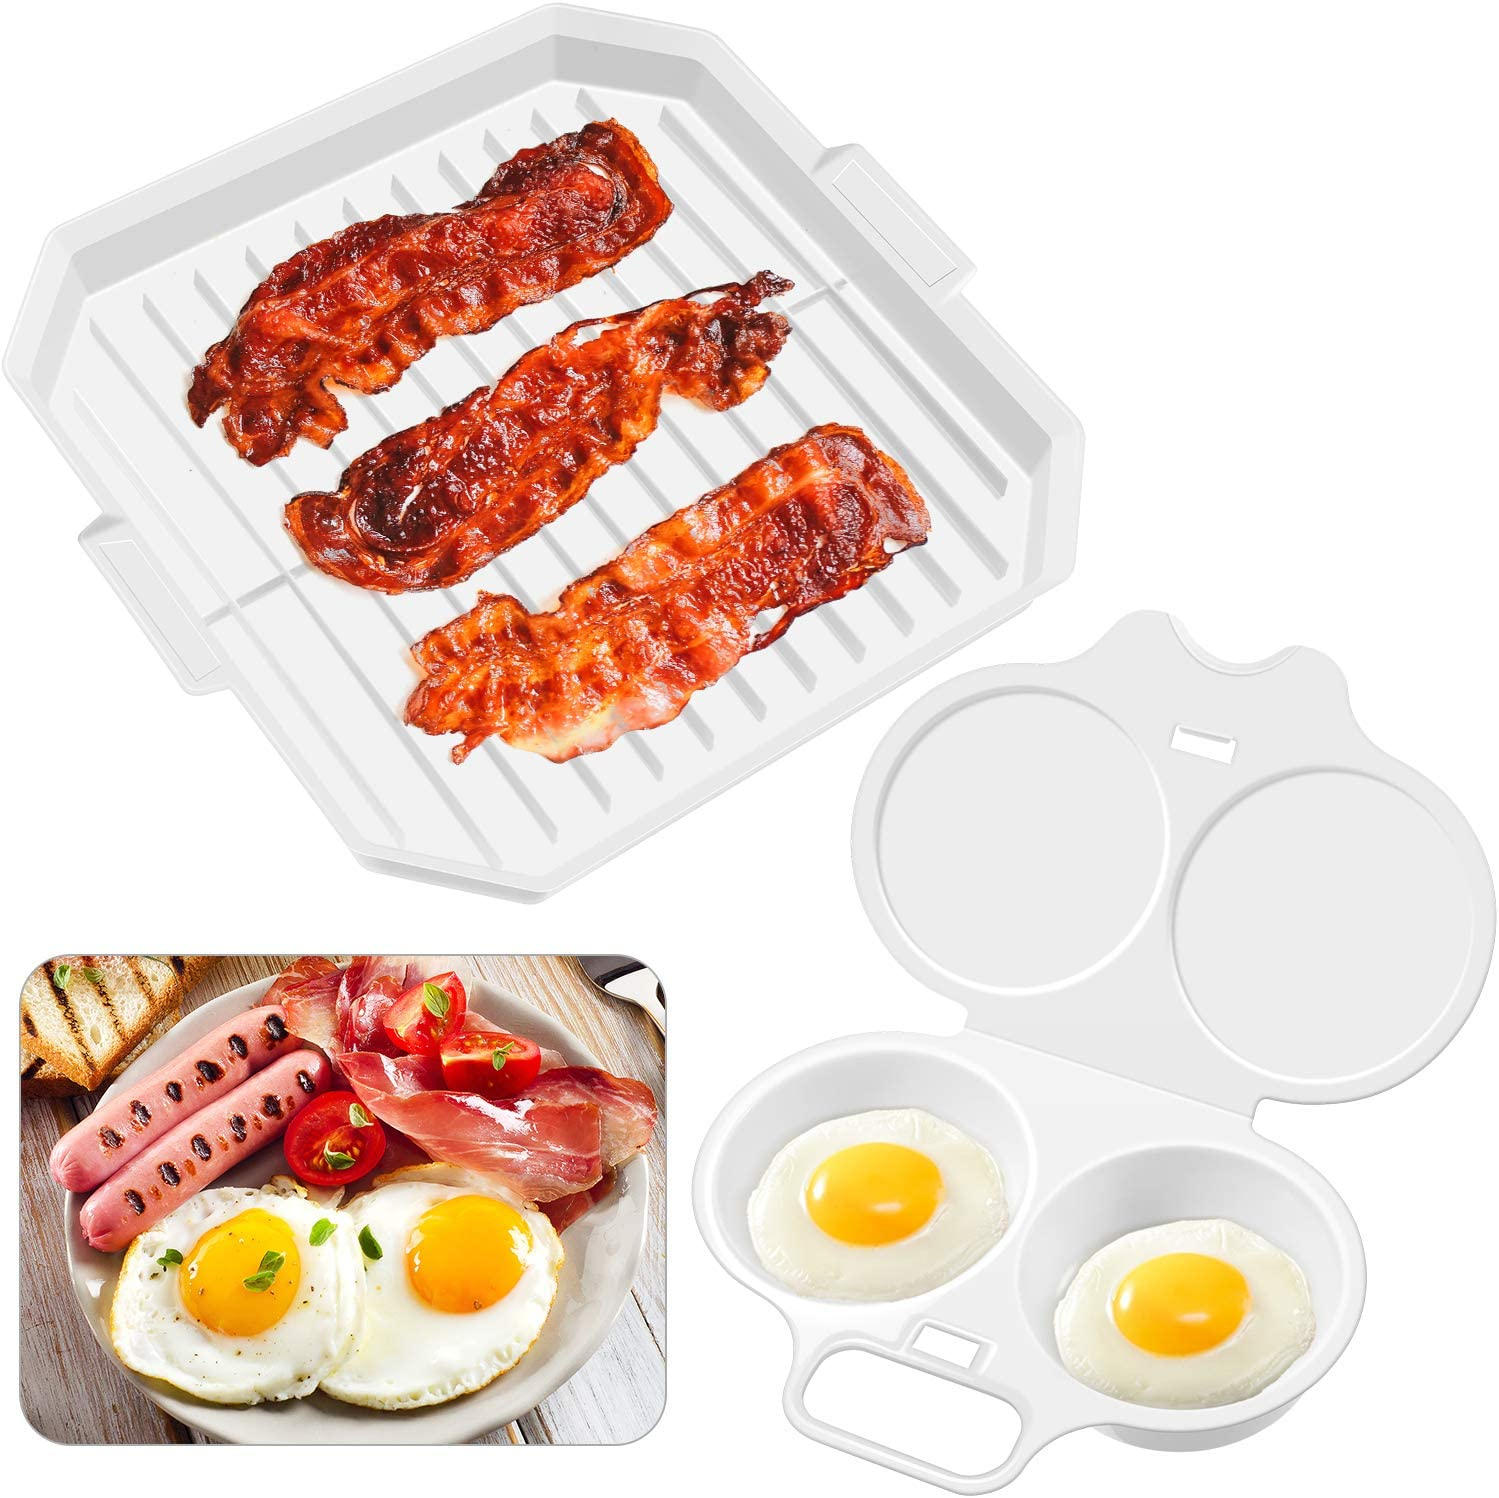 Microwave Bacon and Meat Grill Plate Bacon Cooker Rack and Microwave Egg Poacher with 2 Cavity Compact Egg Maker Poached Egg Steamer Kitchen Gadget